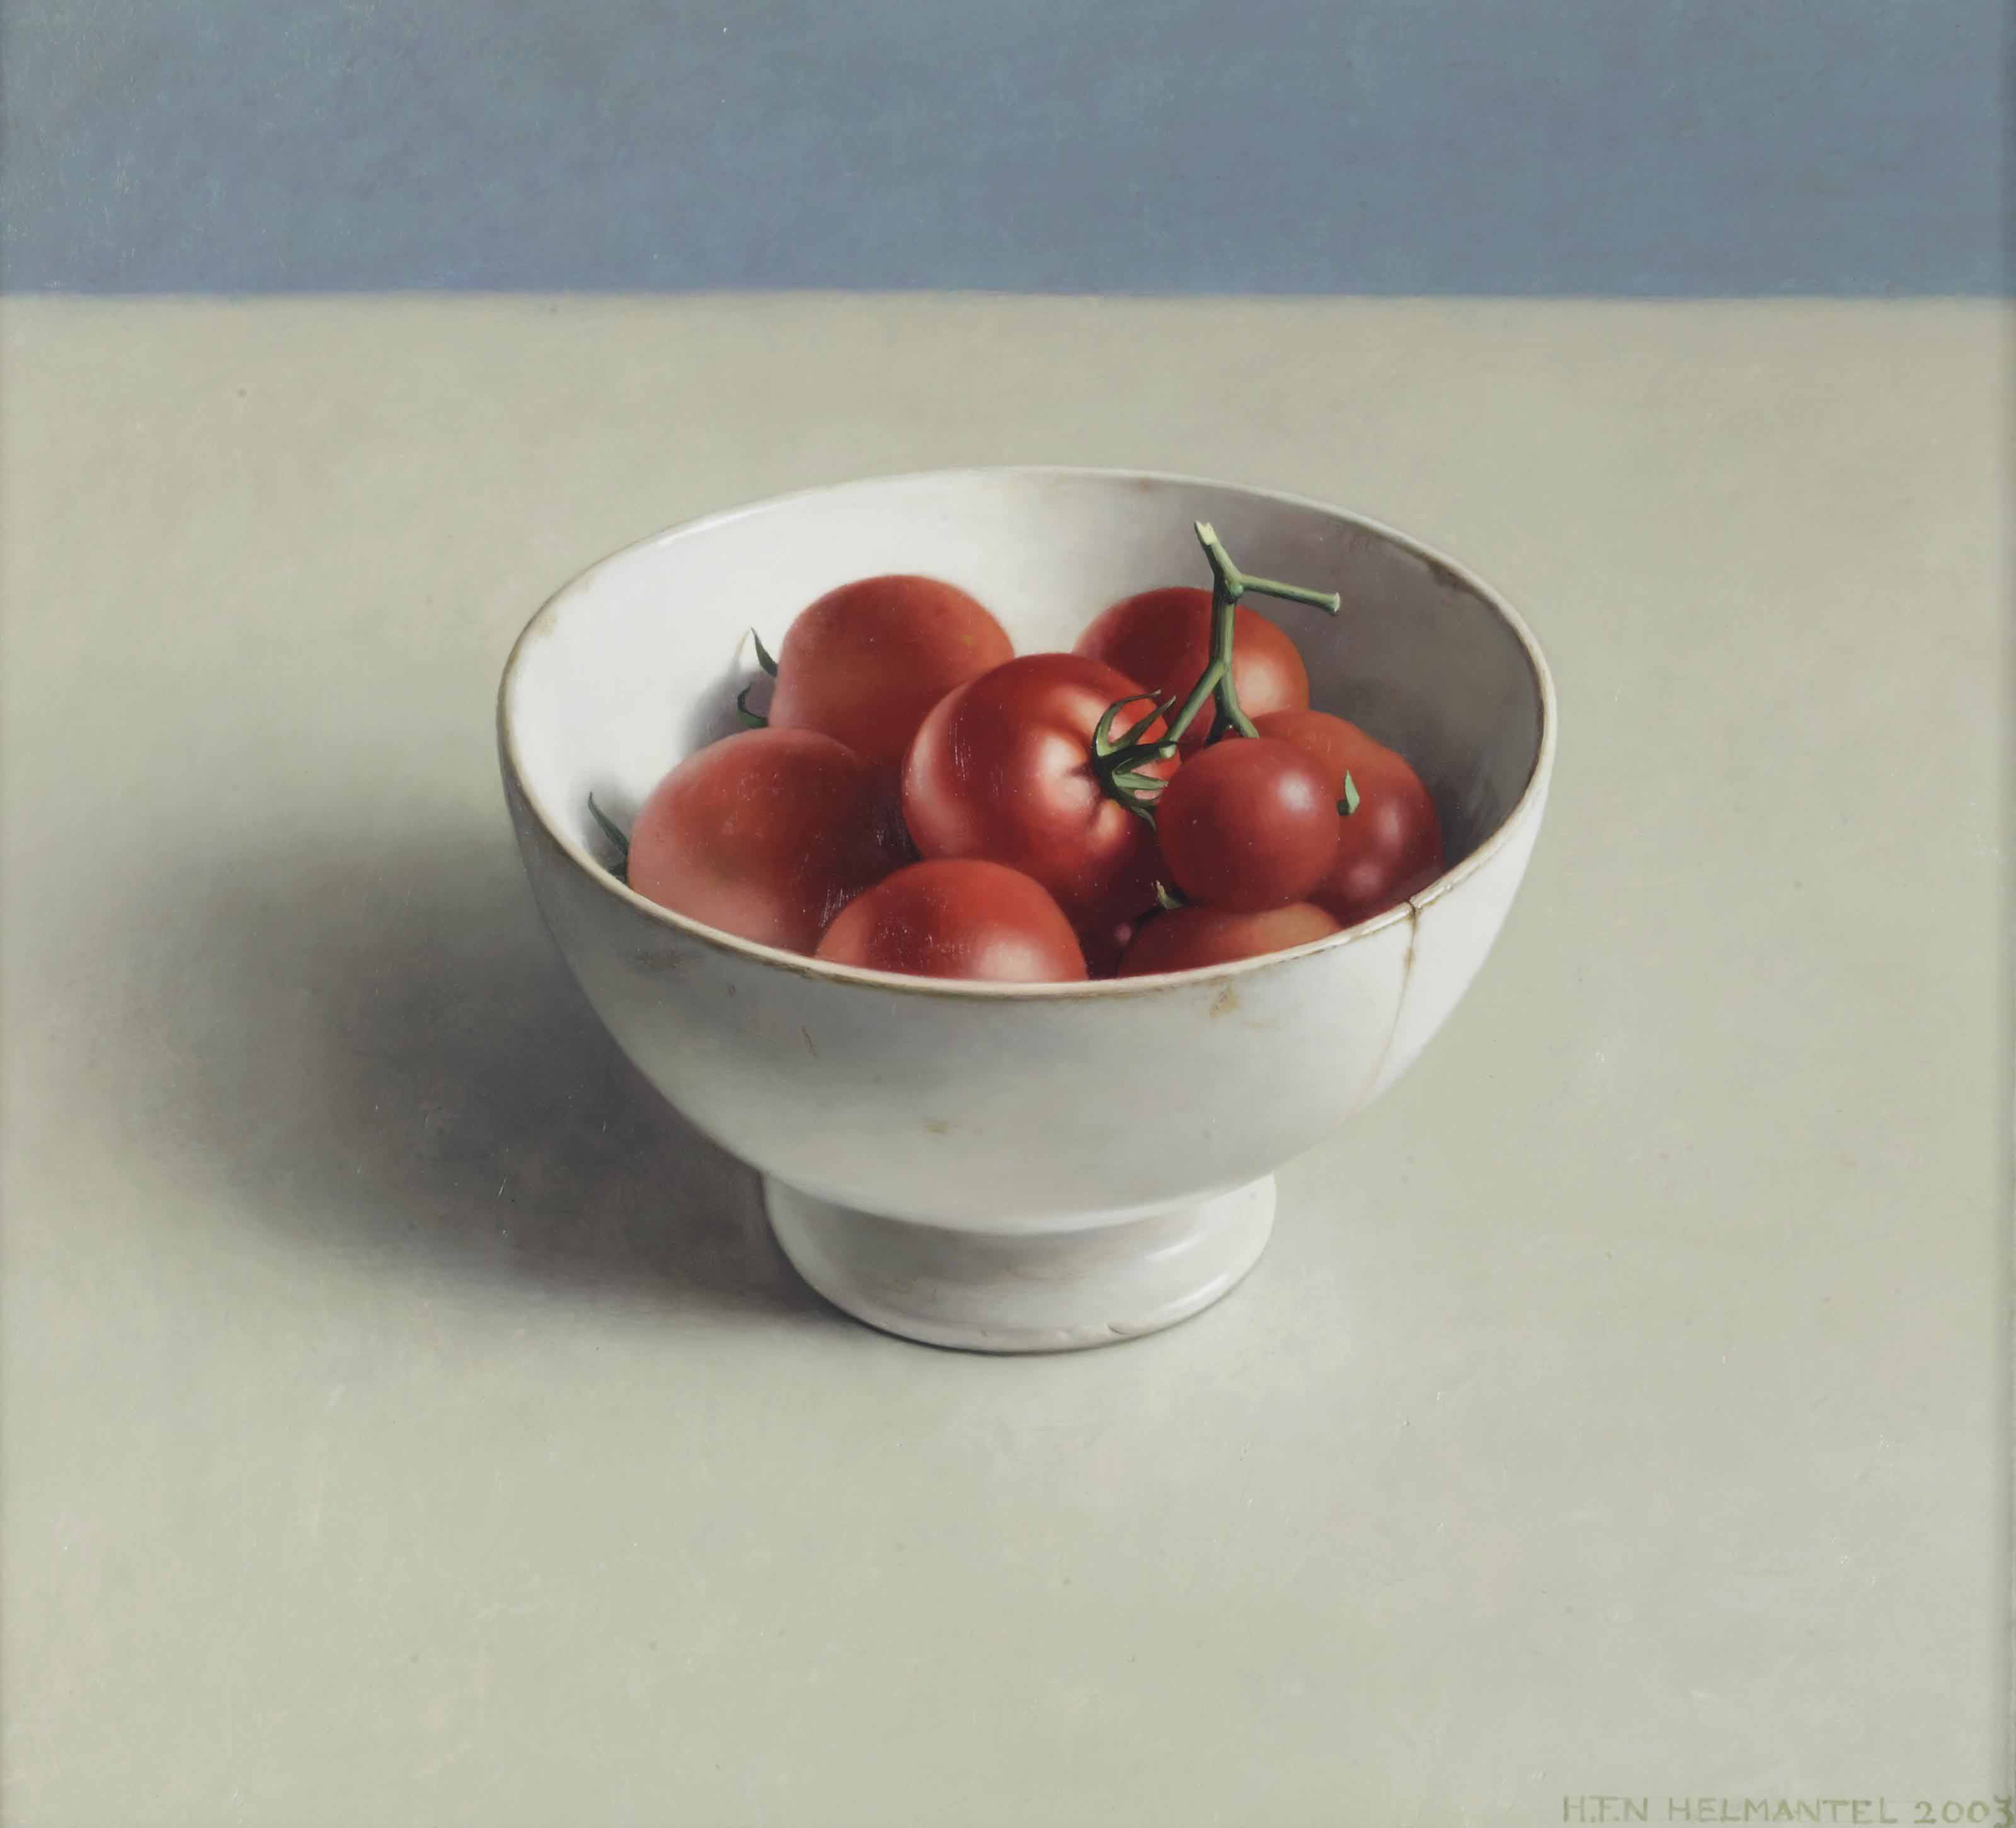 A still life with tomatoes in a bowl